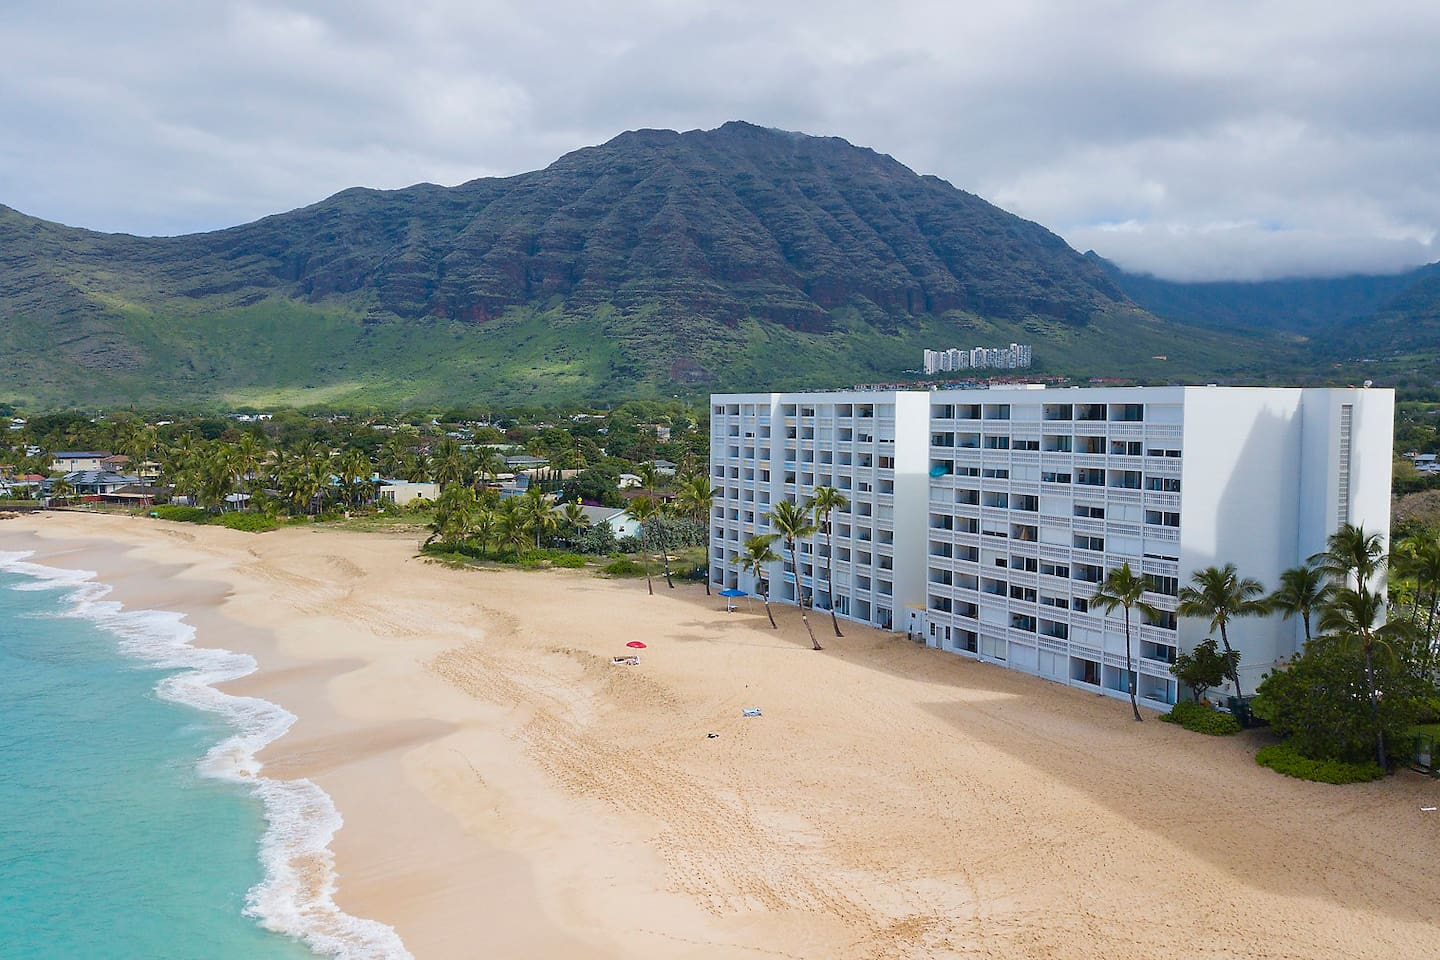 This condo is located on the beach of Turtle Cove and surrounded by Makaha Valley